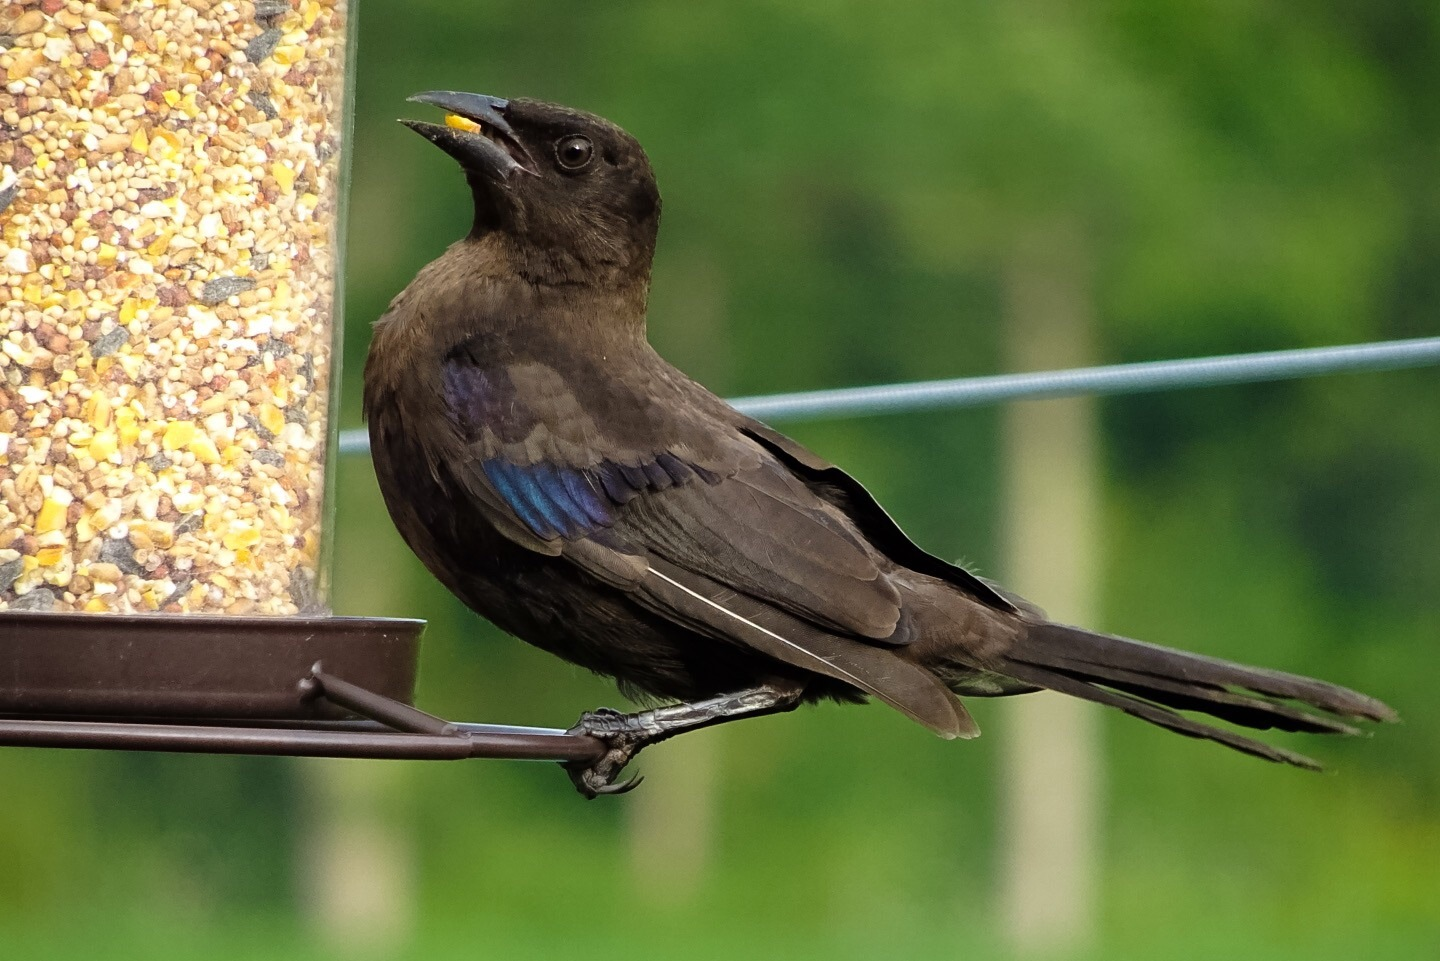 Young Grackle by Dorothy D